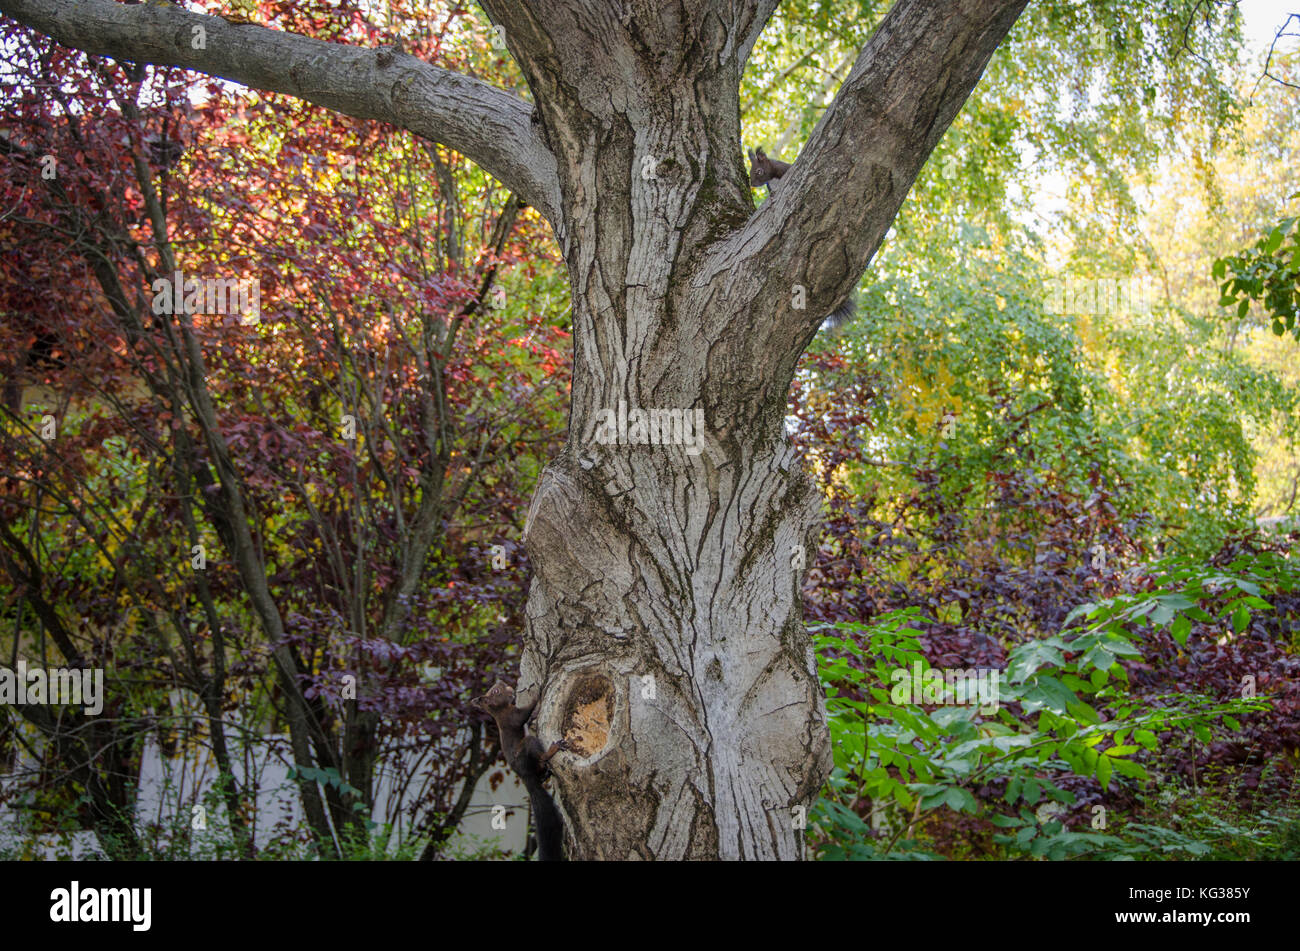 Squirrels playing on tree - Stock Image